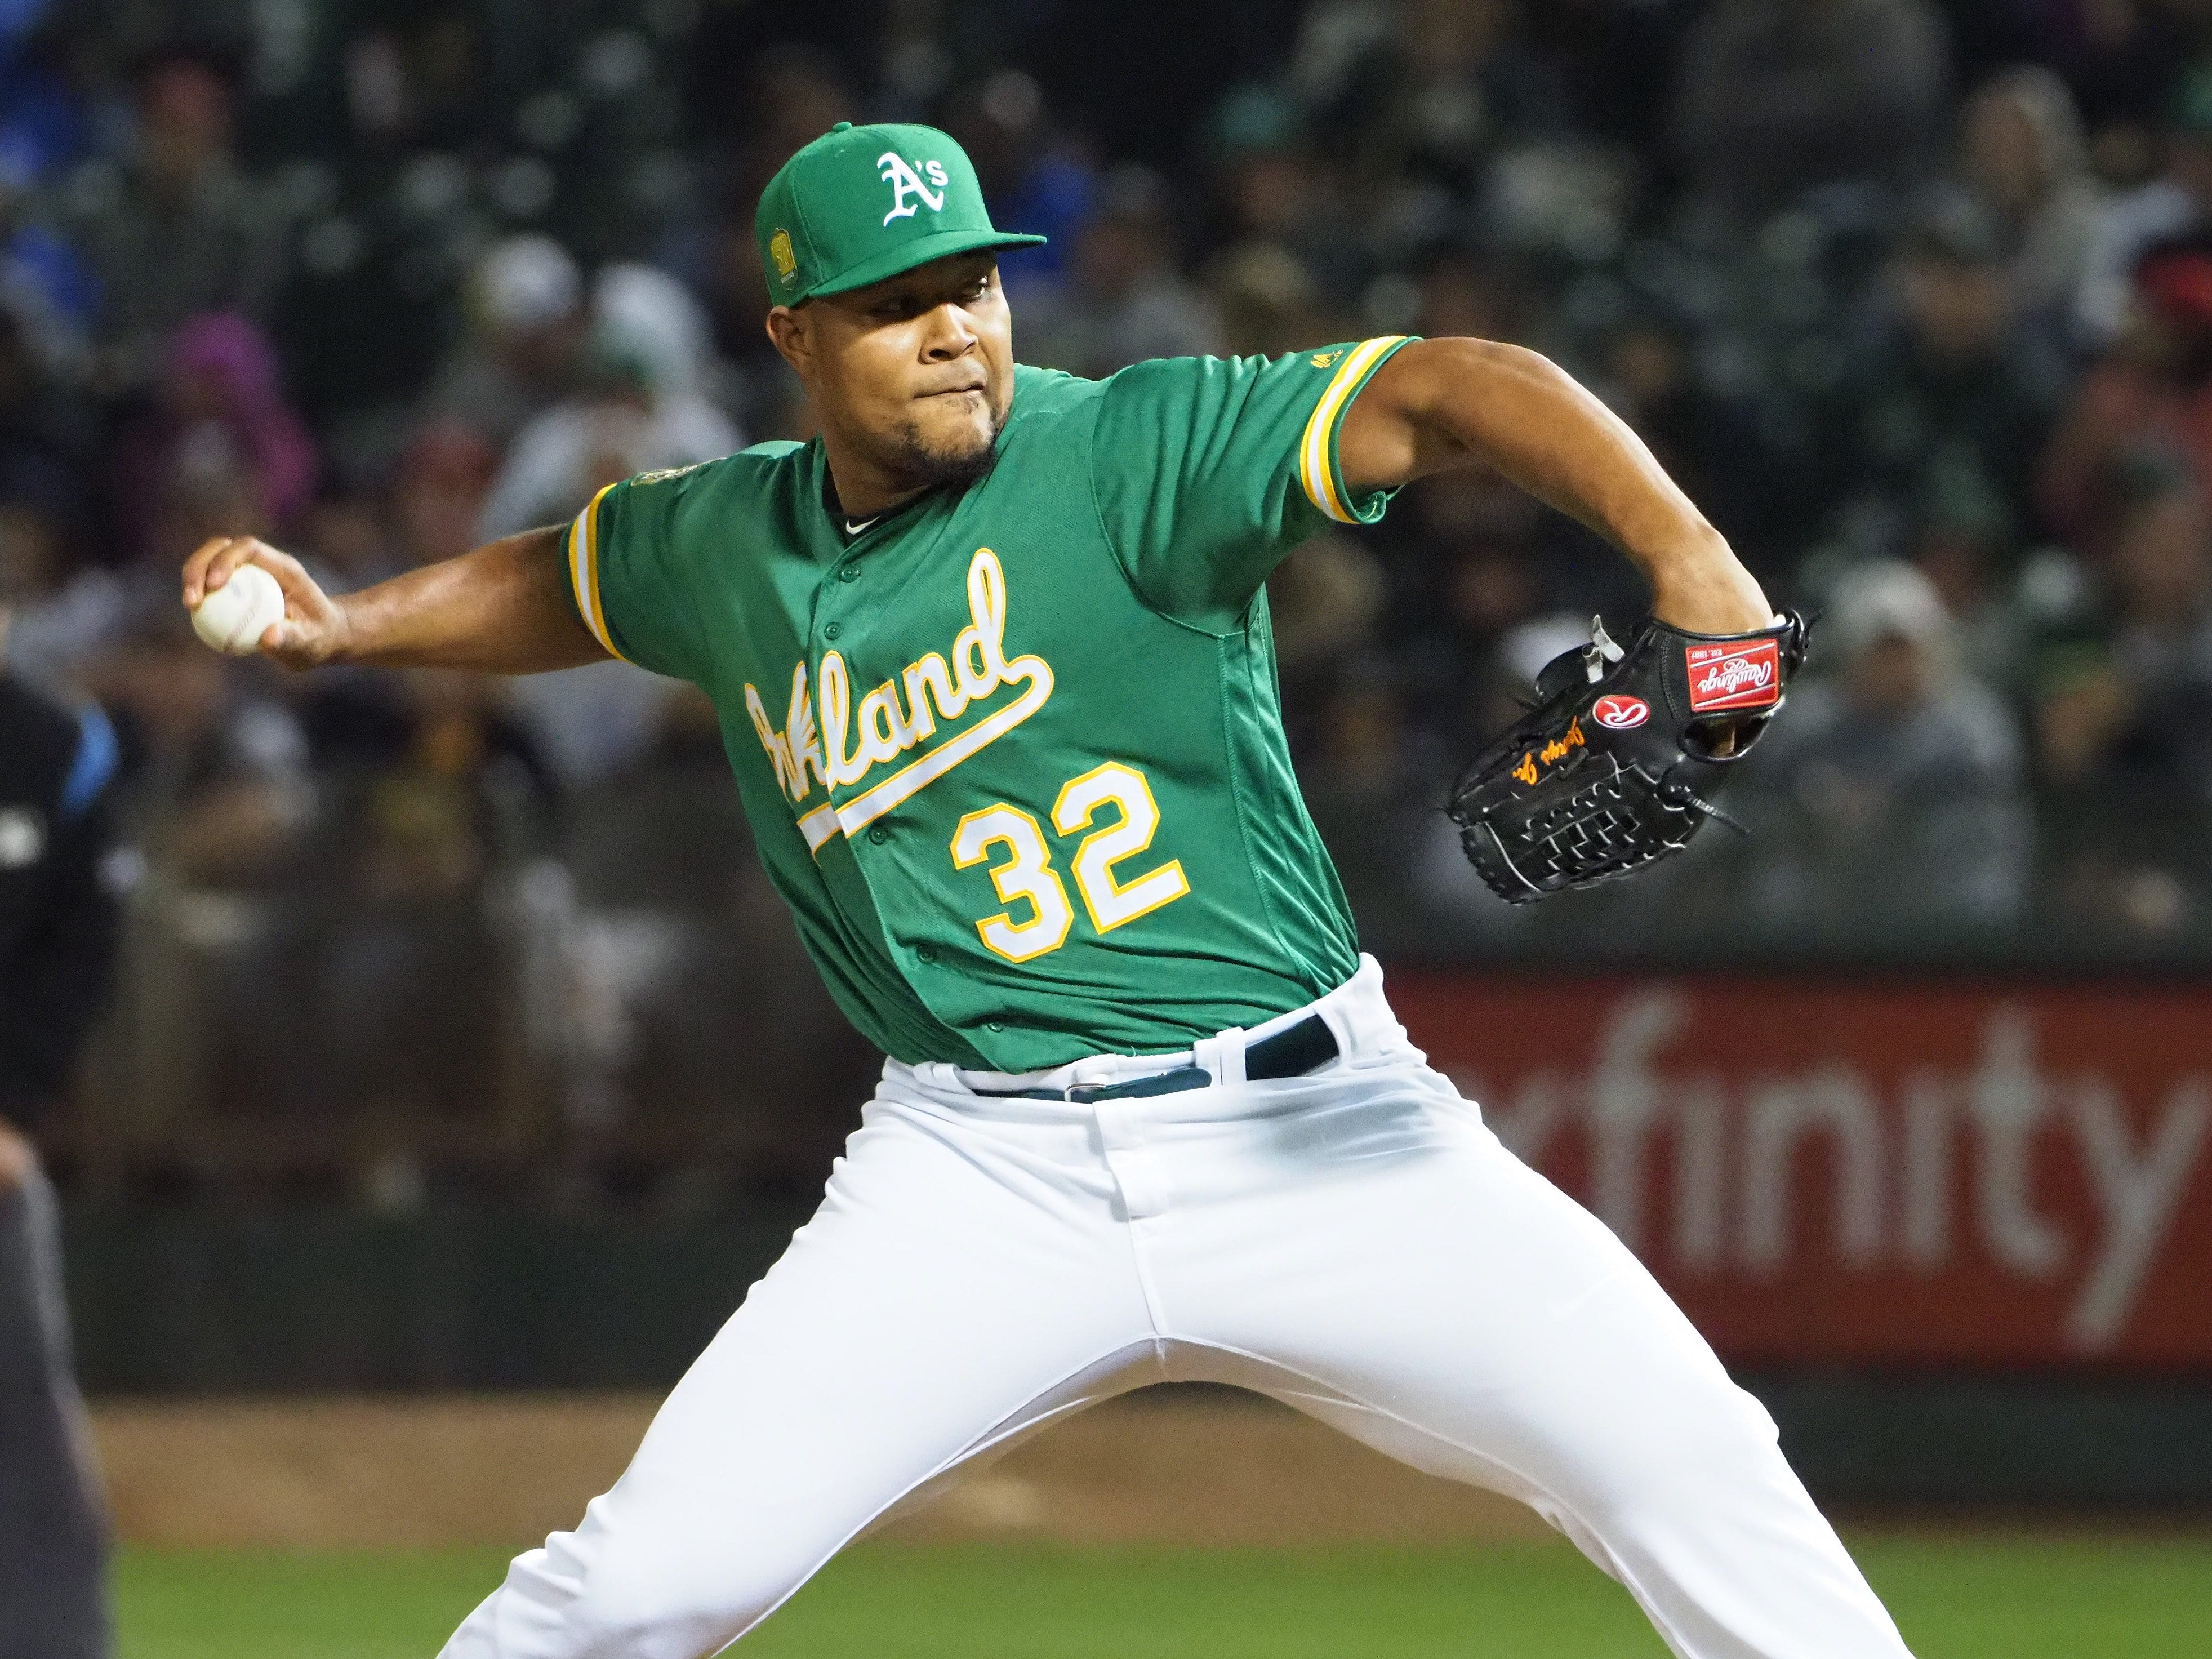 Jeurys Familia (29, RHP, Athletics) – signed with Mets, 3 years/$30 million